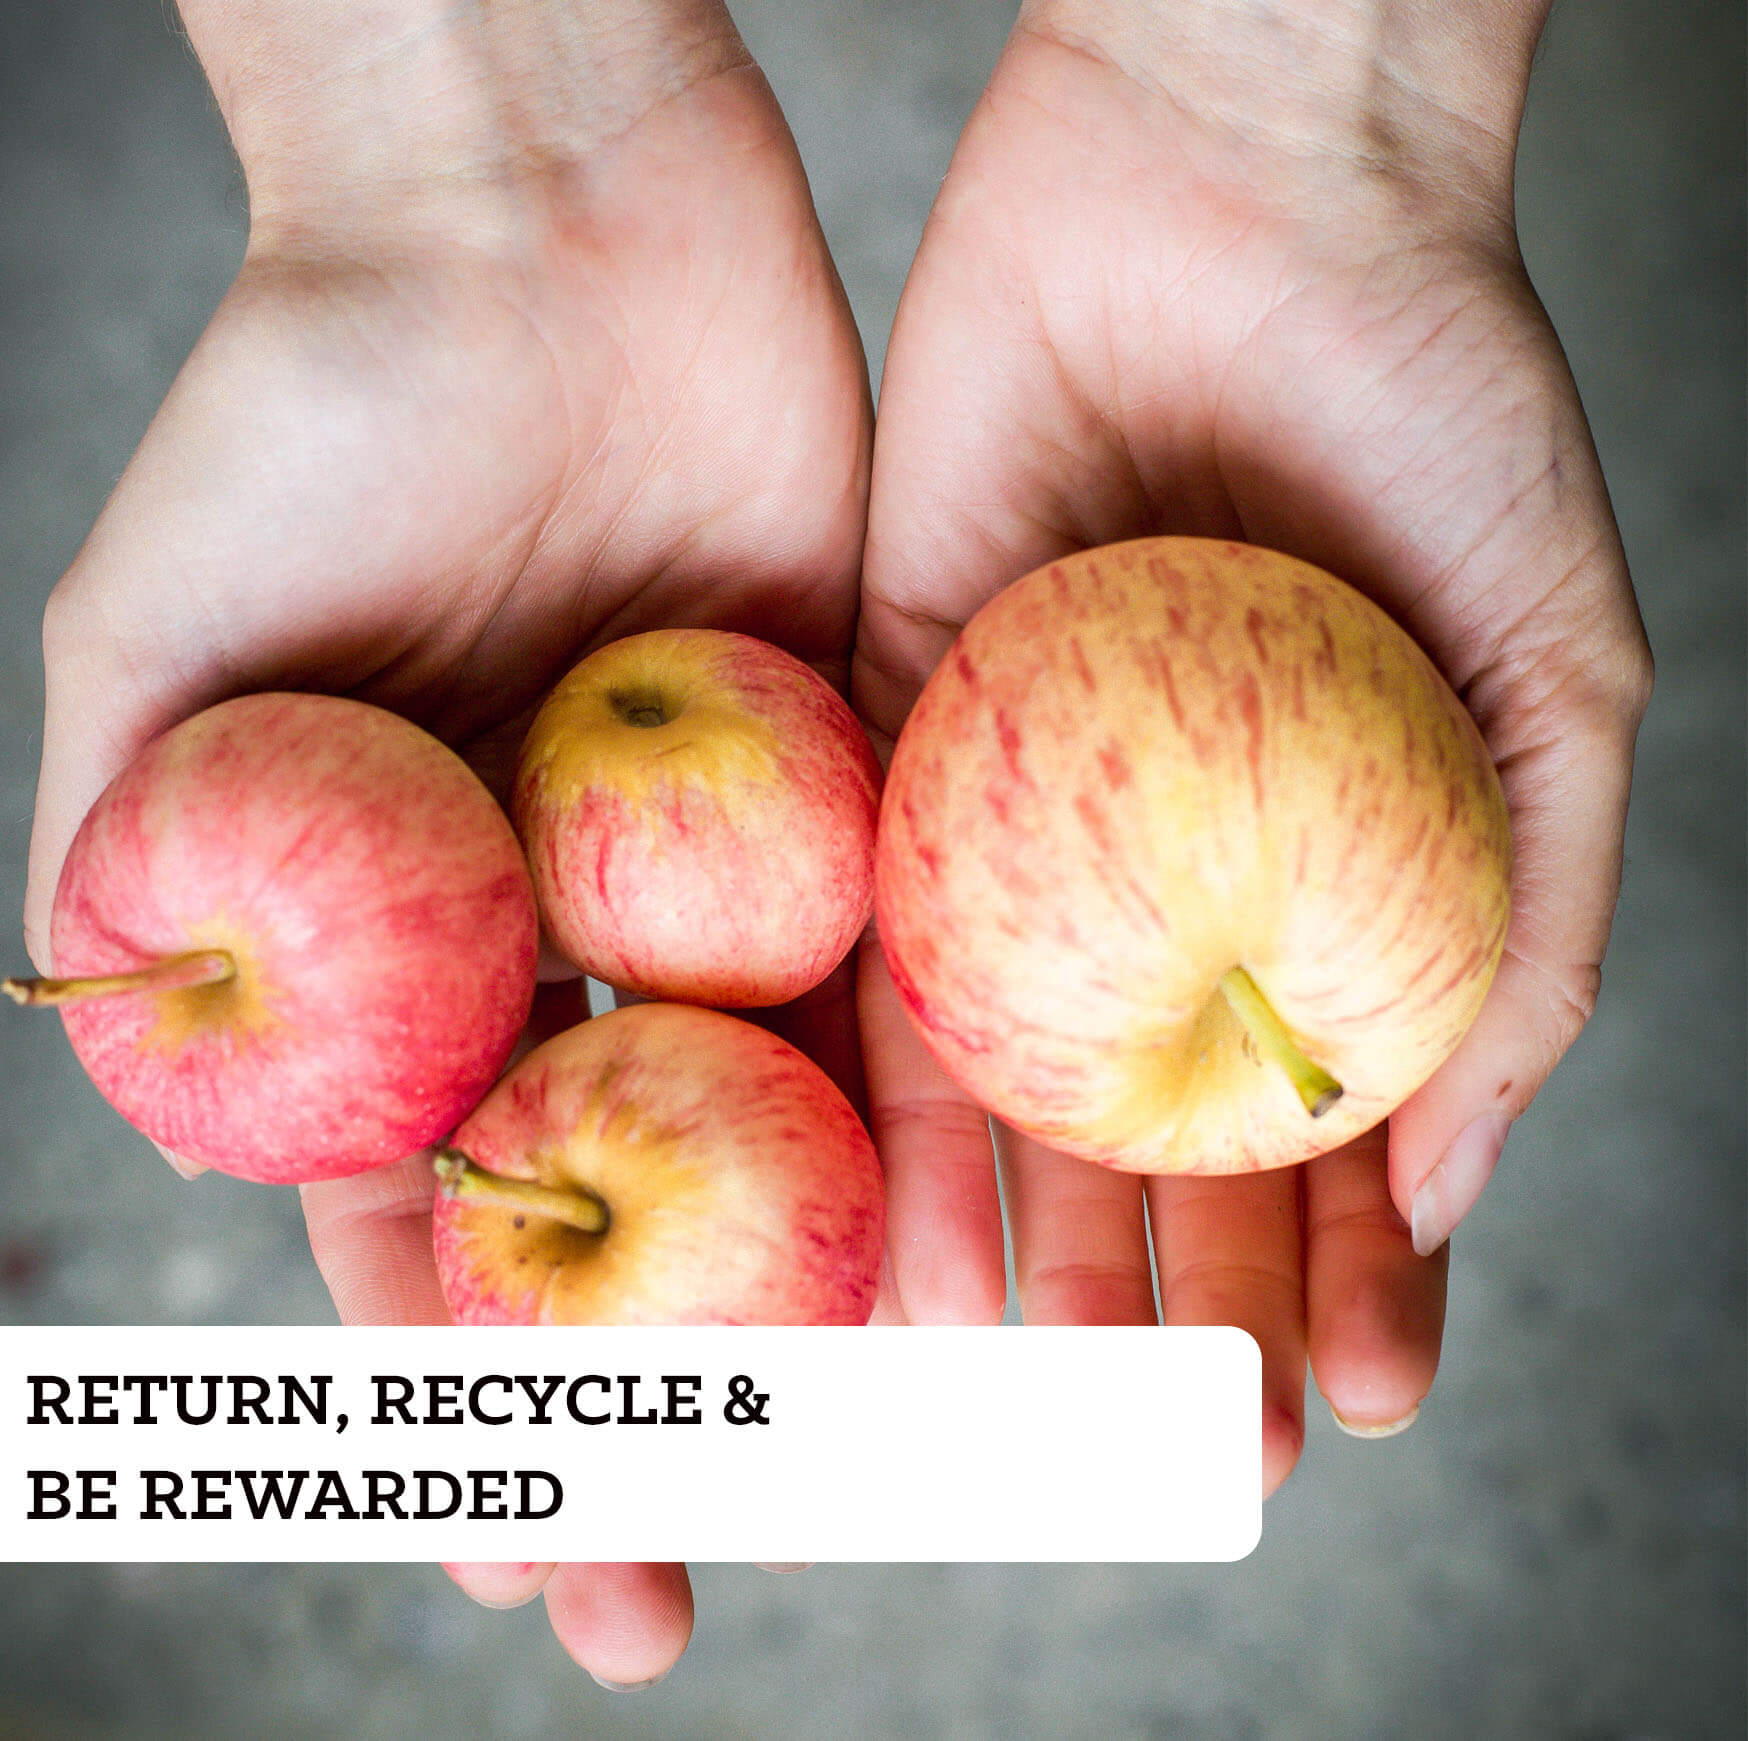 Return, recicle and be rewarded